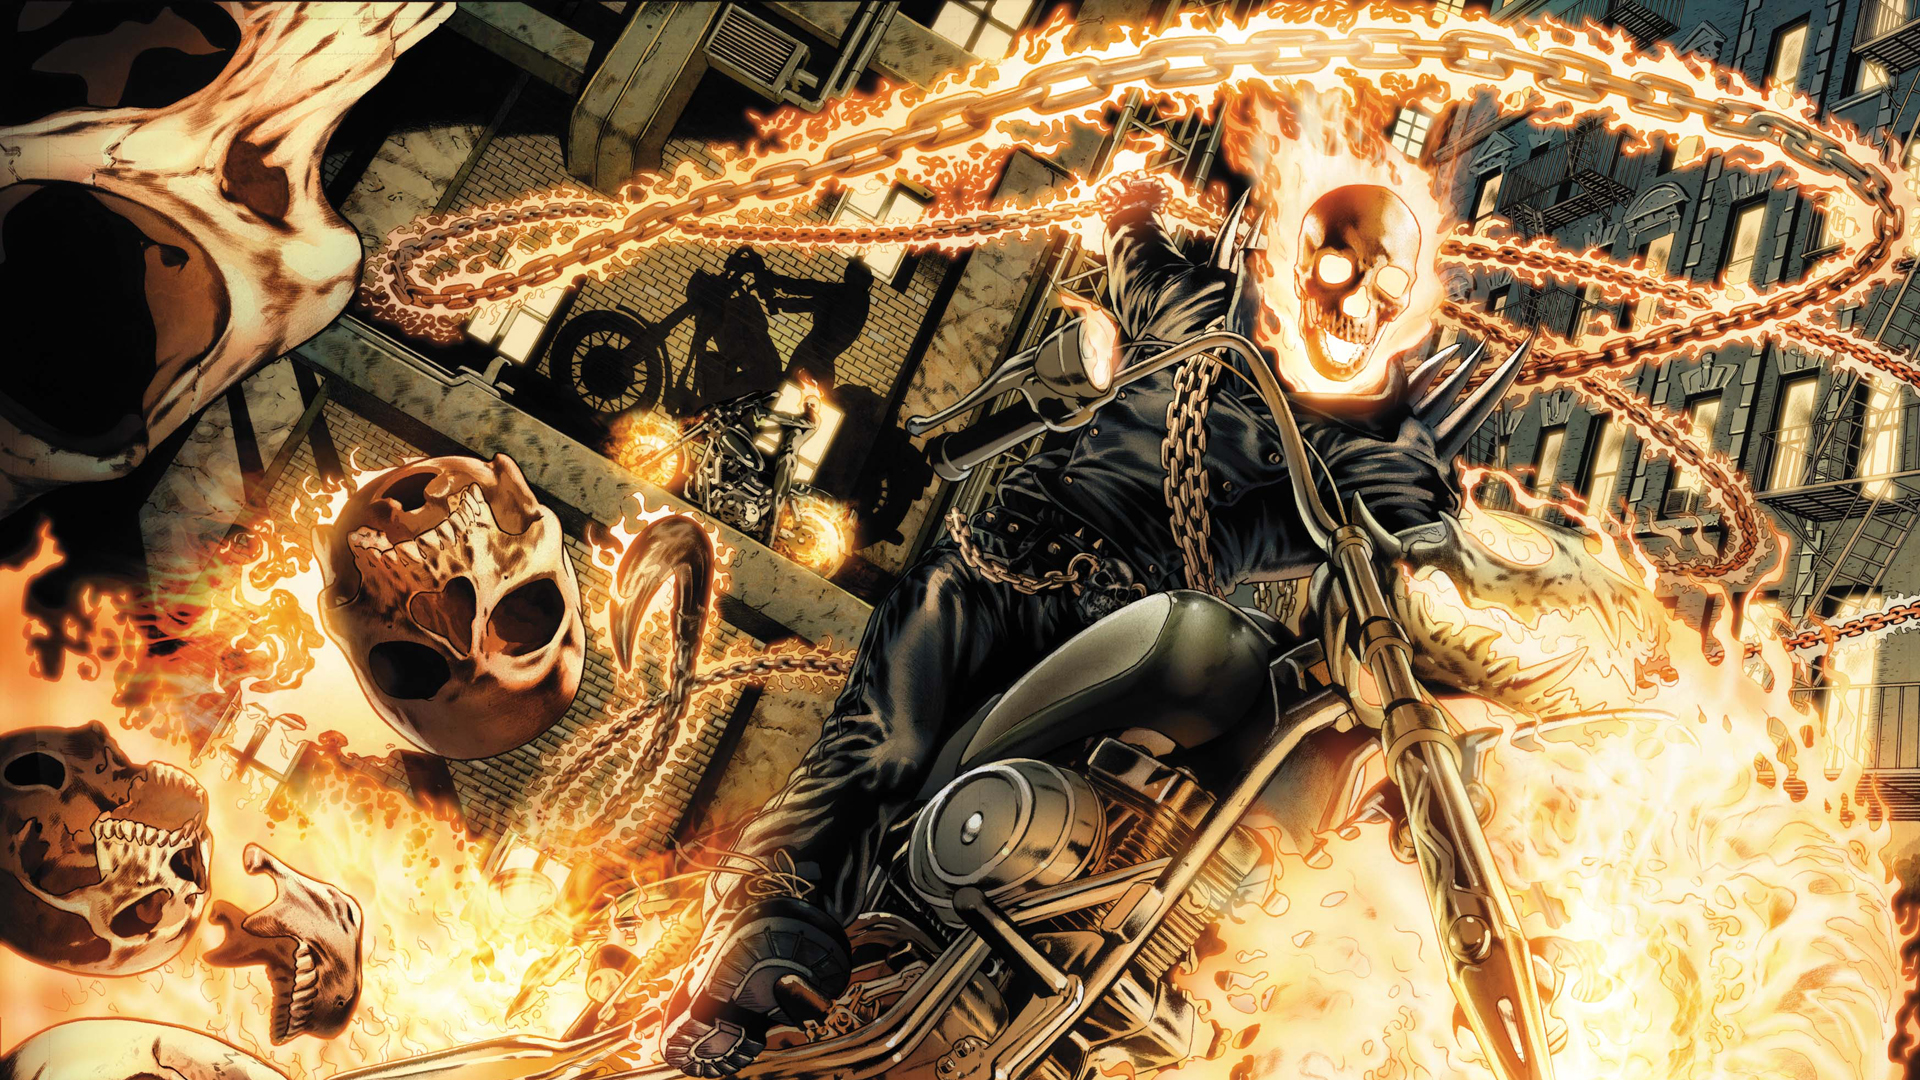 Ghost 3d Wallpaper Download Ghost Rider Wallpaper 1920x1080 69823